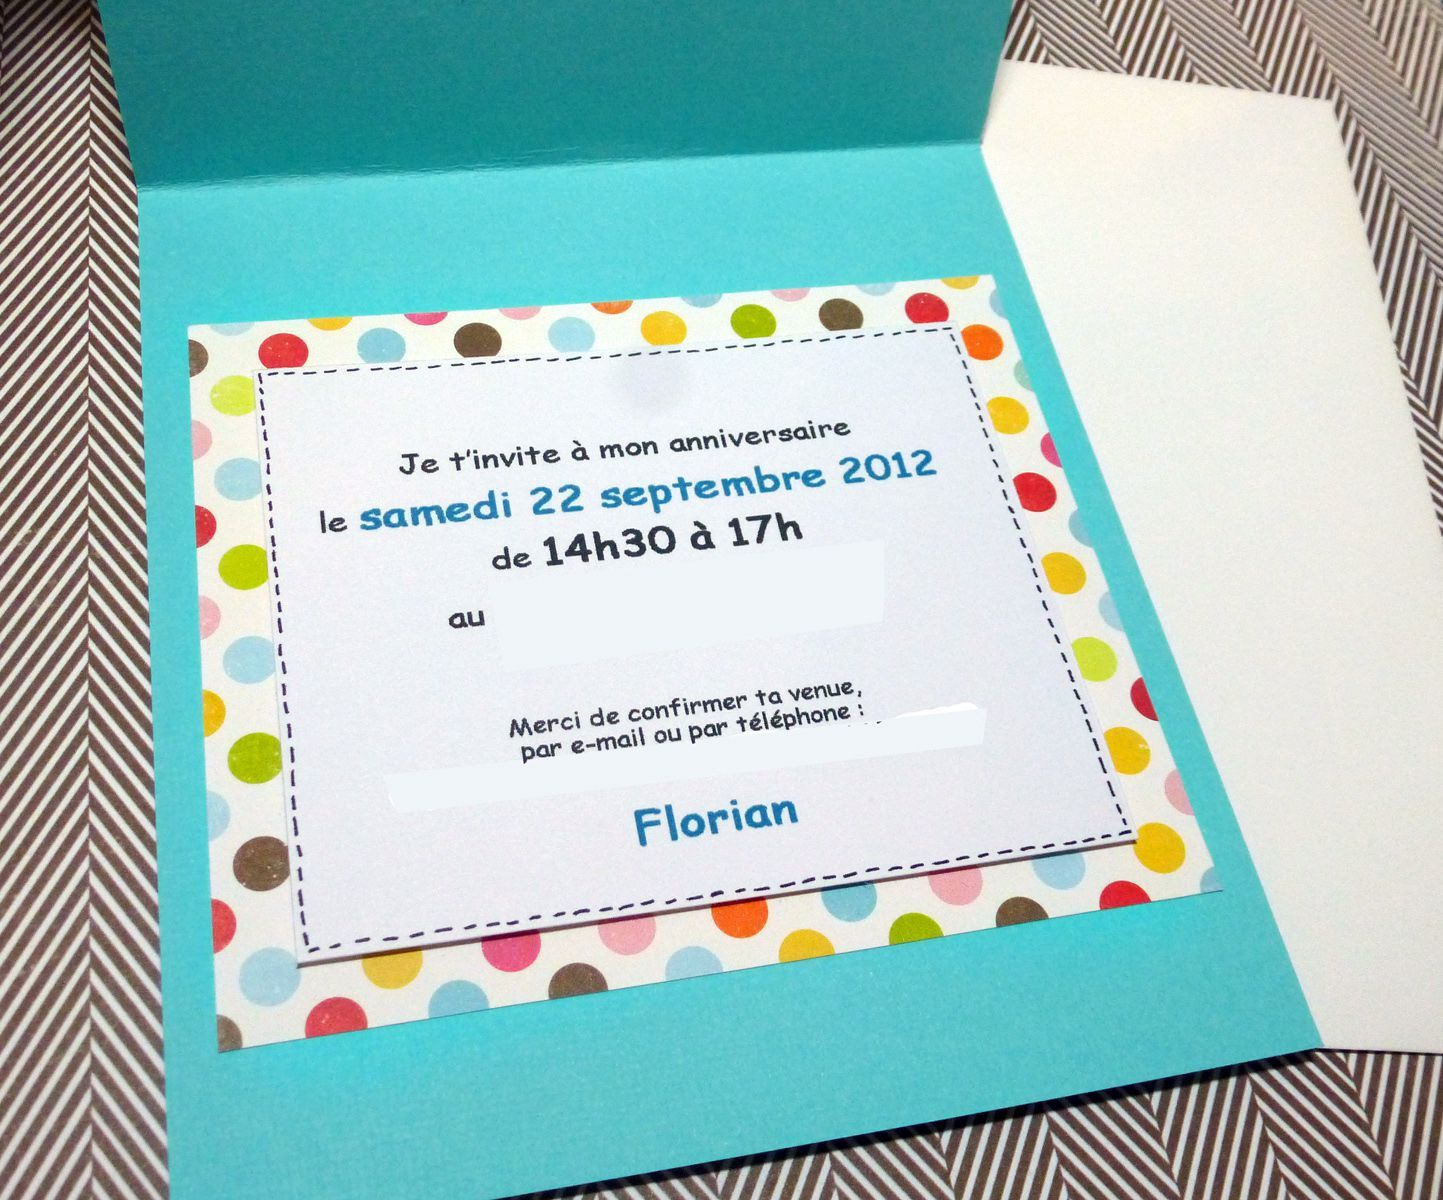 Extrem carte d invitation anniversaire ado | INVITATIONS | Pinterest DL52